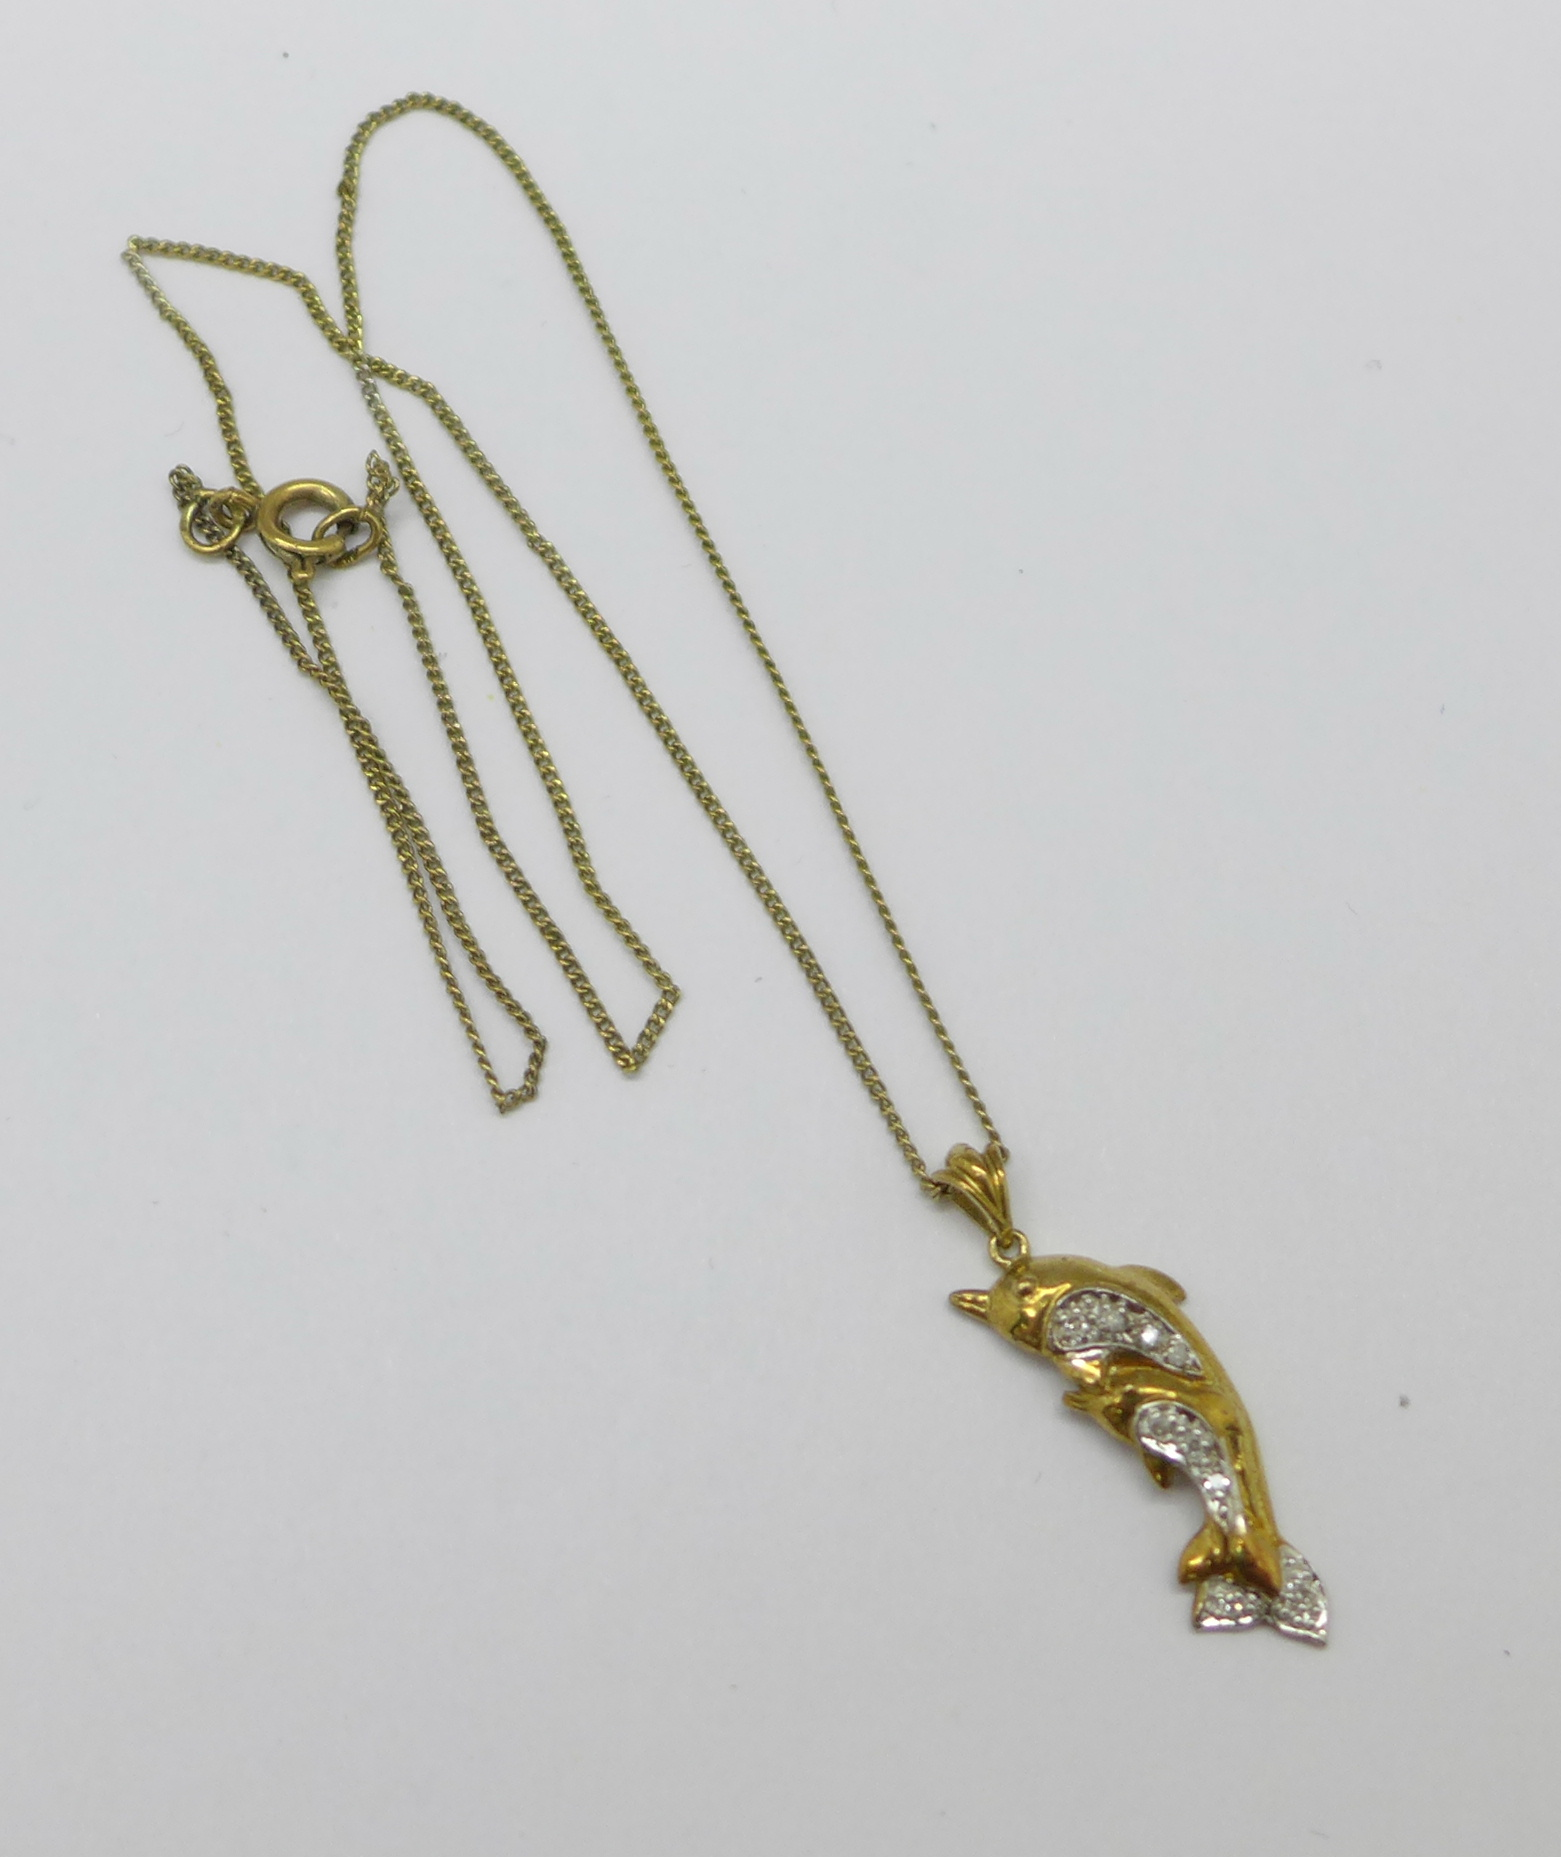 A 9ct gold dolphin pendant on chain, set with nine diamonds, pendant 25mm